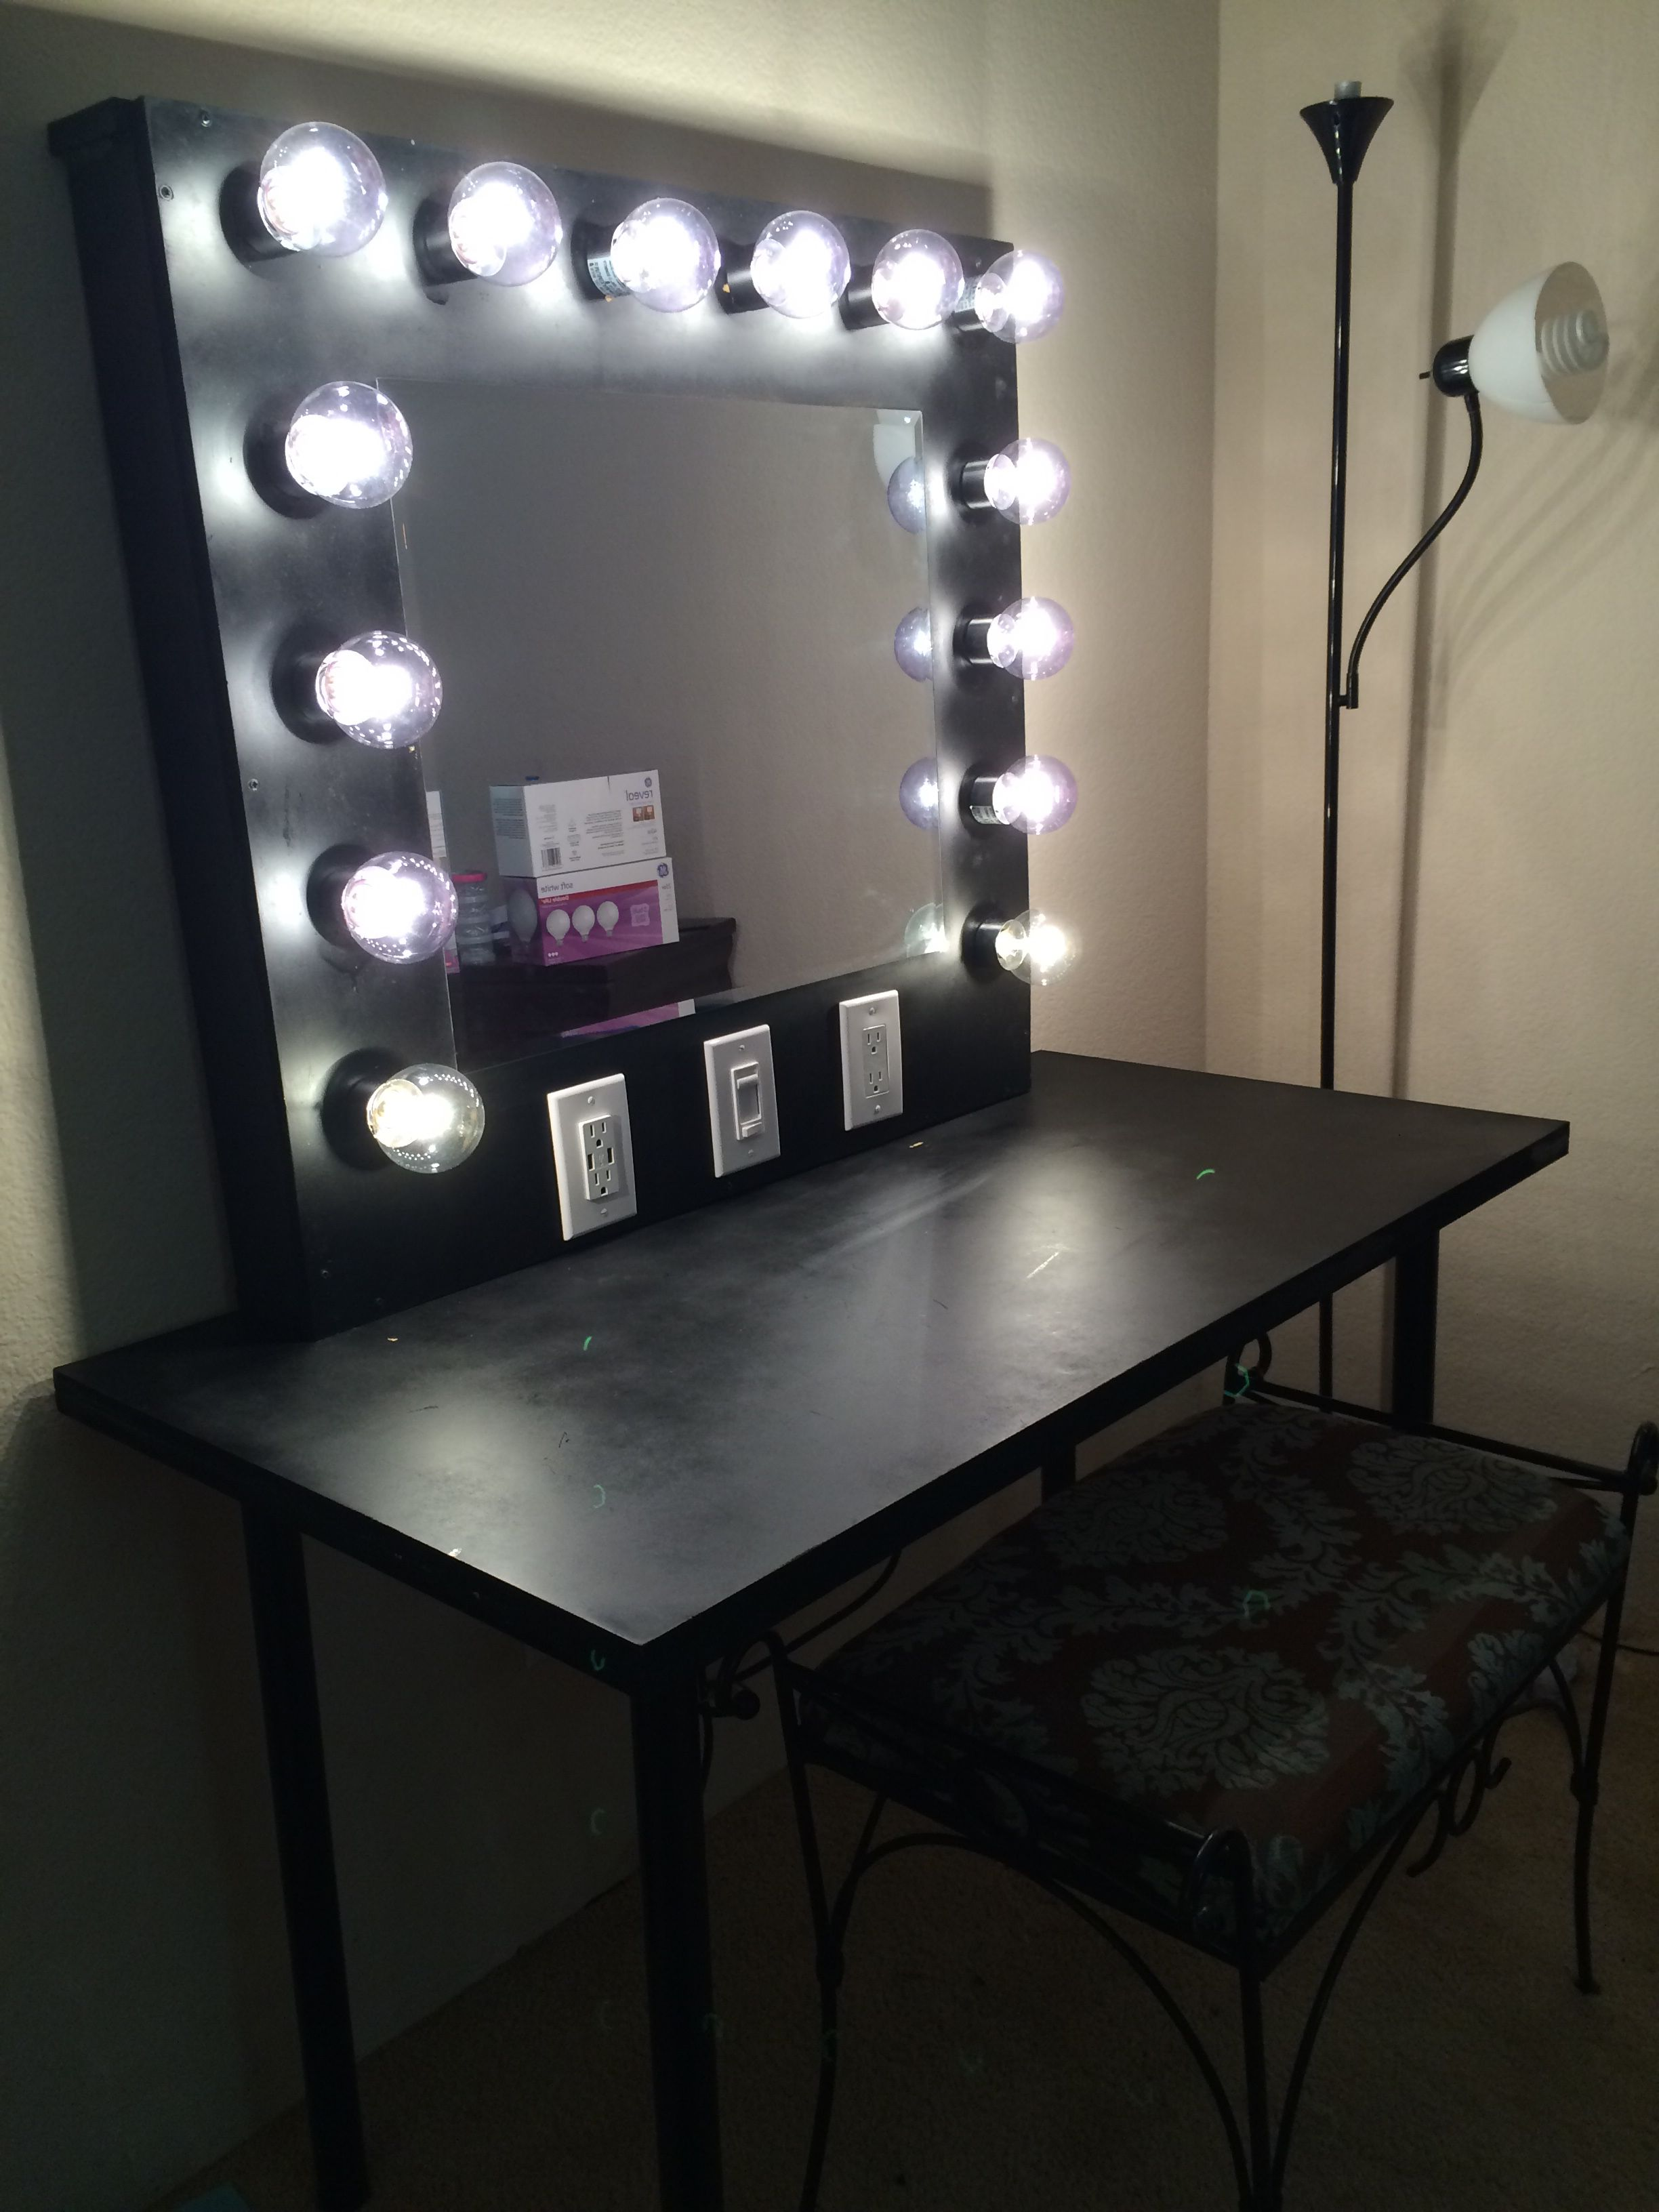 Wonderful Homemade Vanity Mirror With Lights And Table